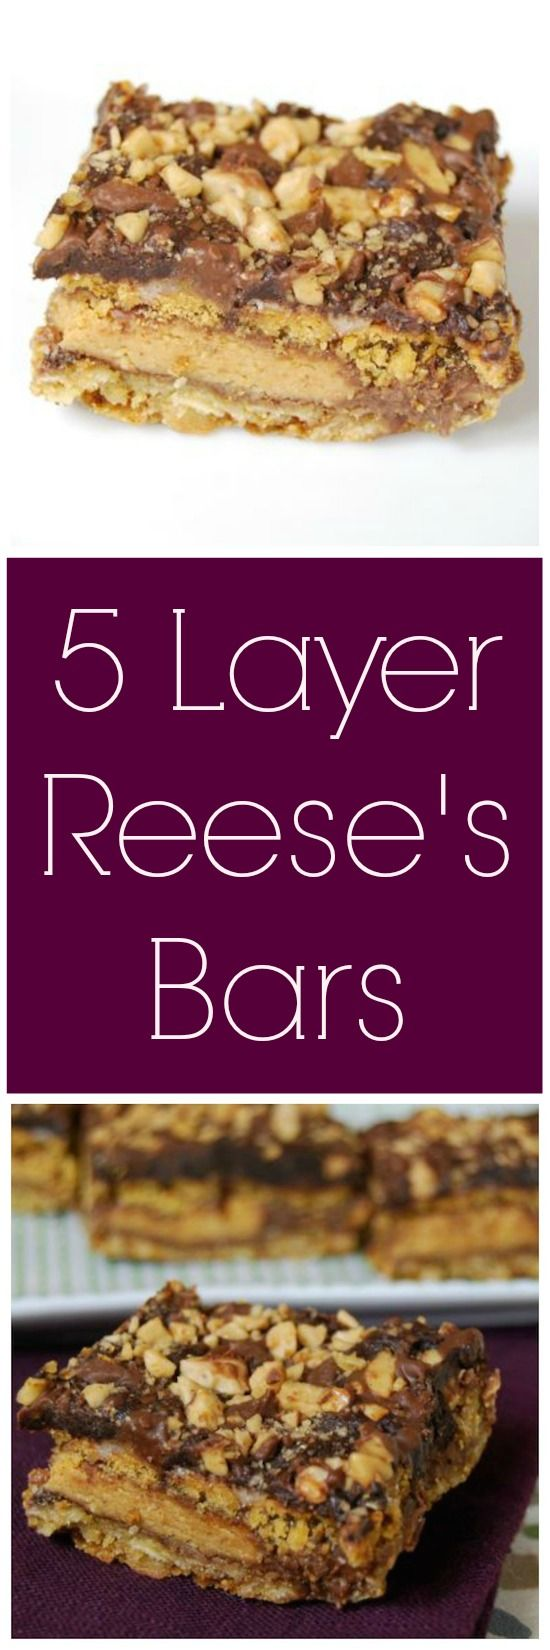 Five Layer Reese's Bars: Cookies bars stuffed with candy- what could be better?